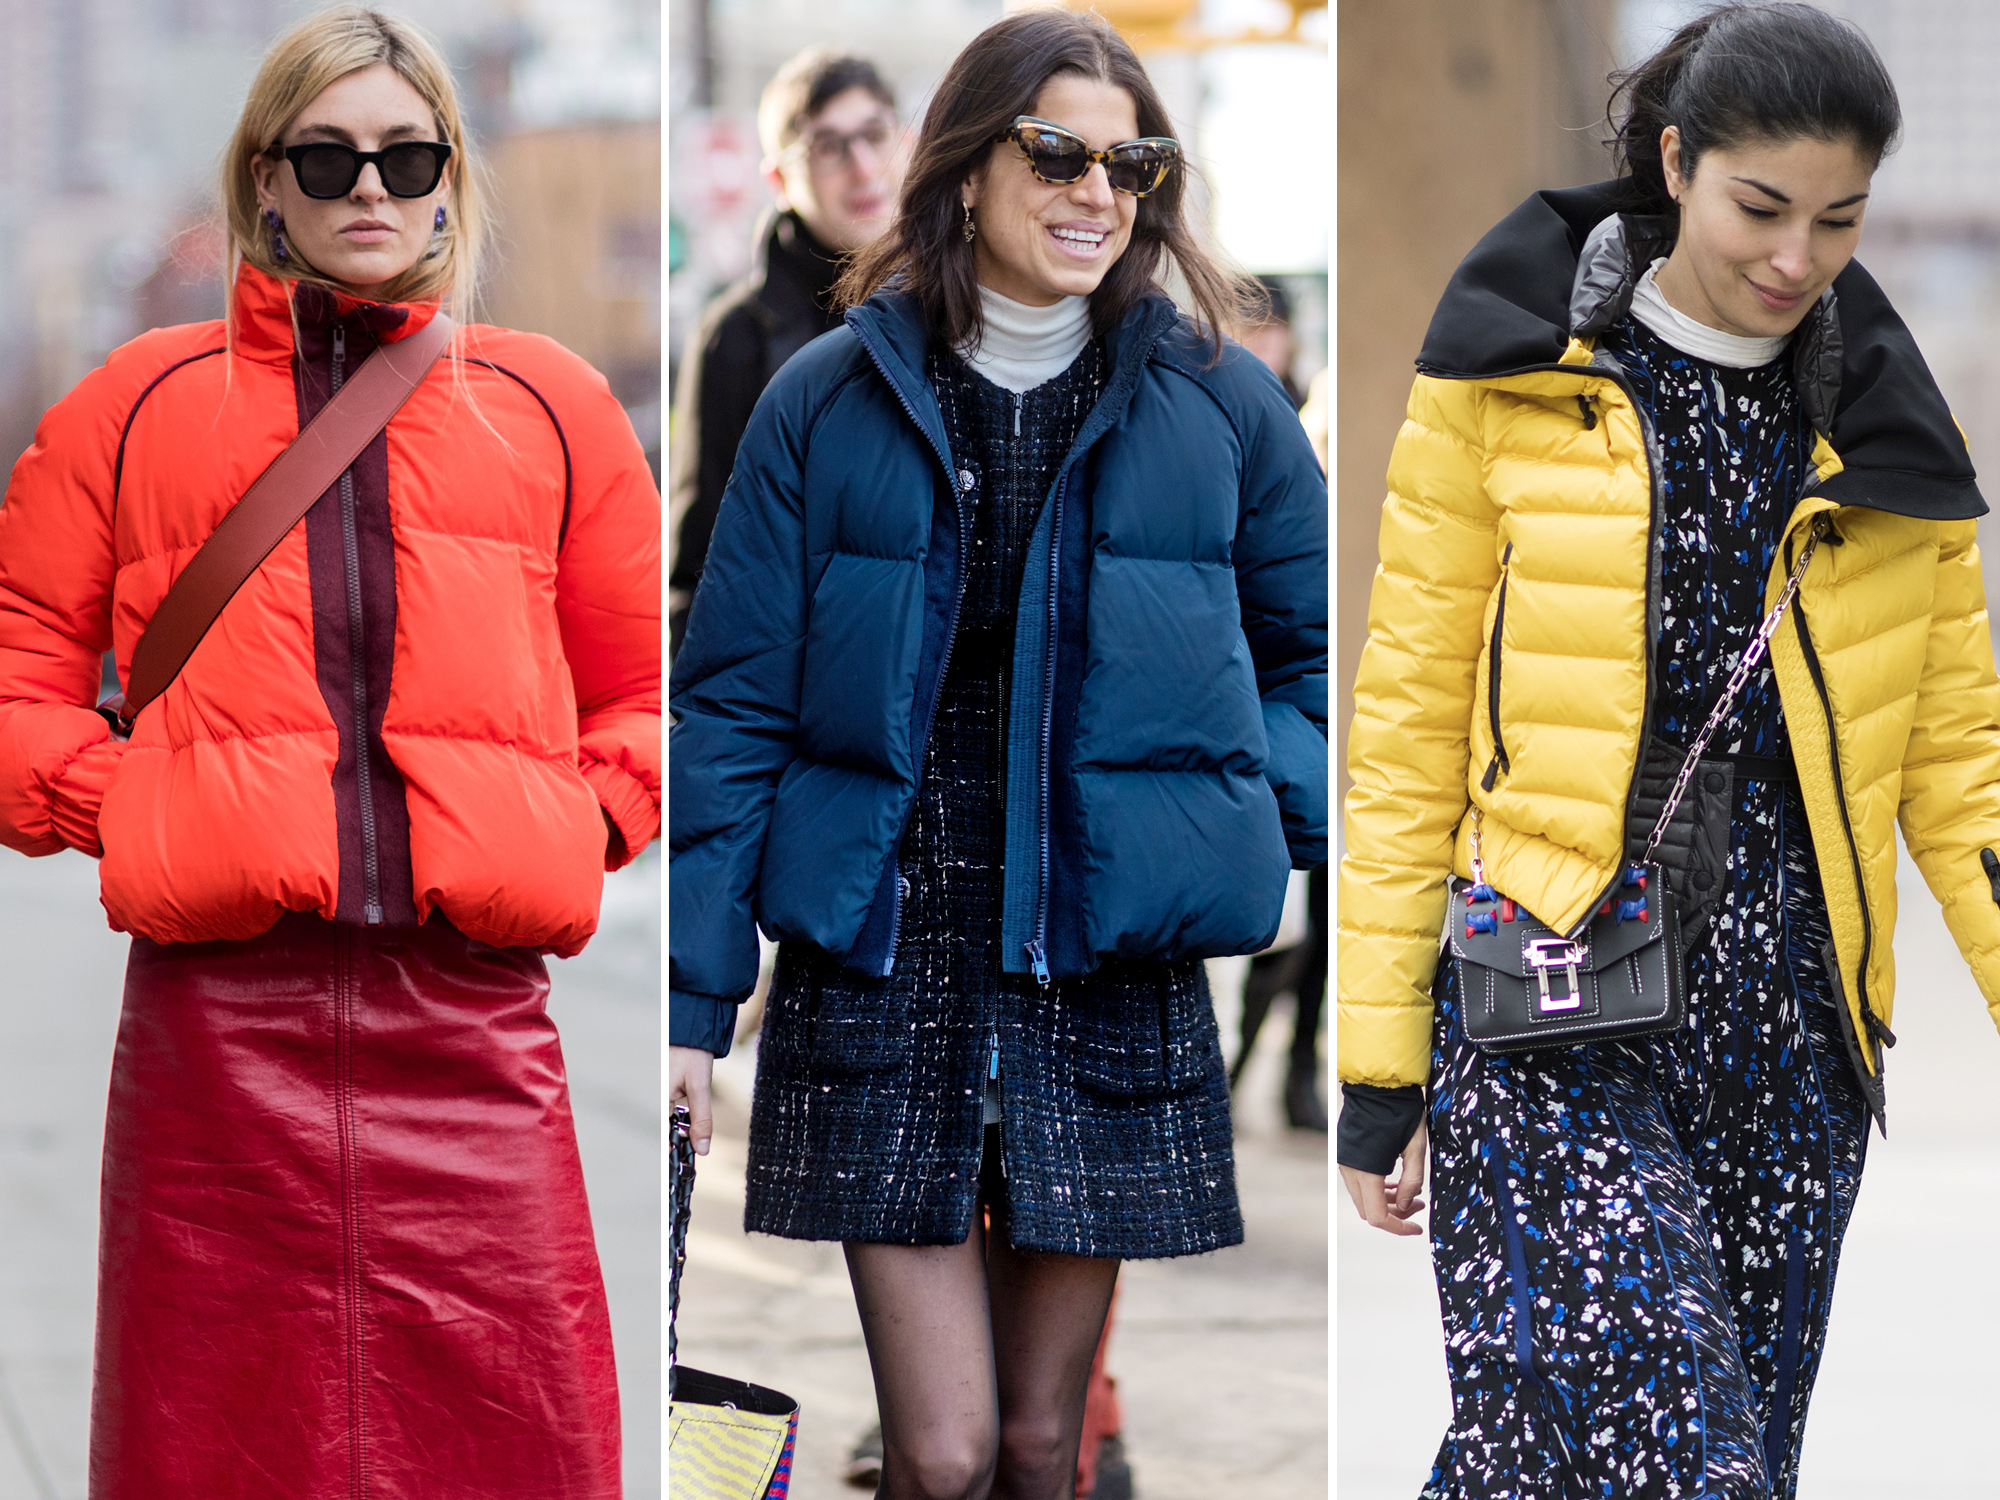 3 Cute Puffer Pairings Inspired By Street Style Stars